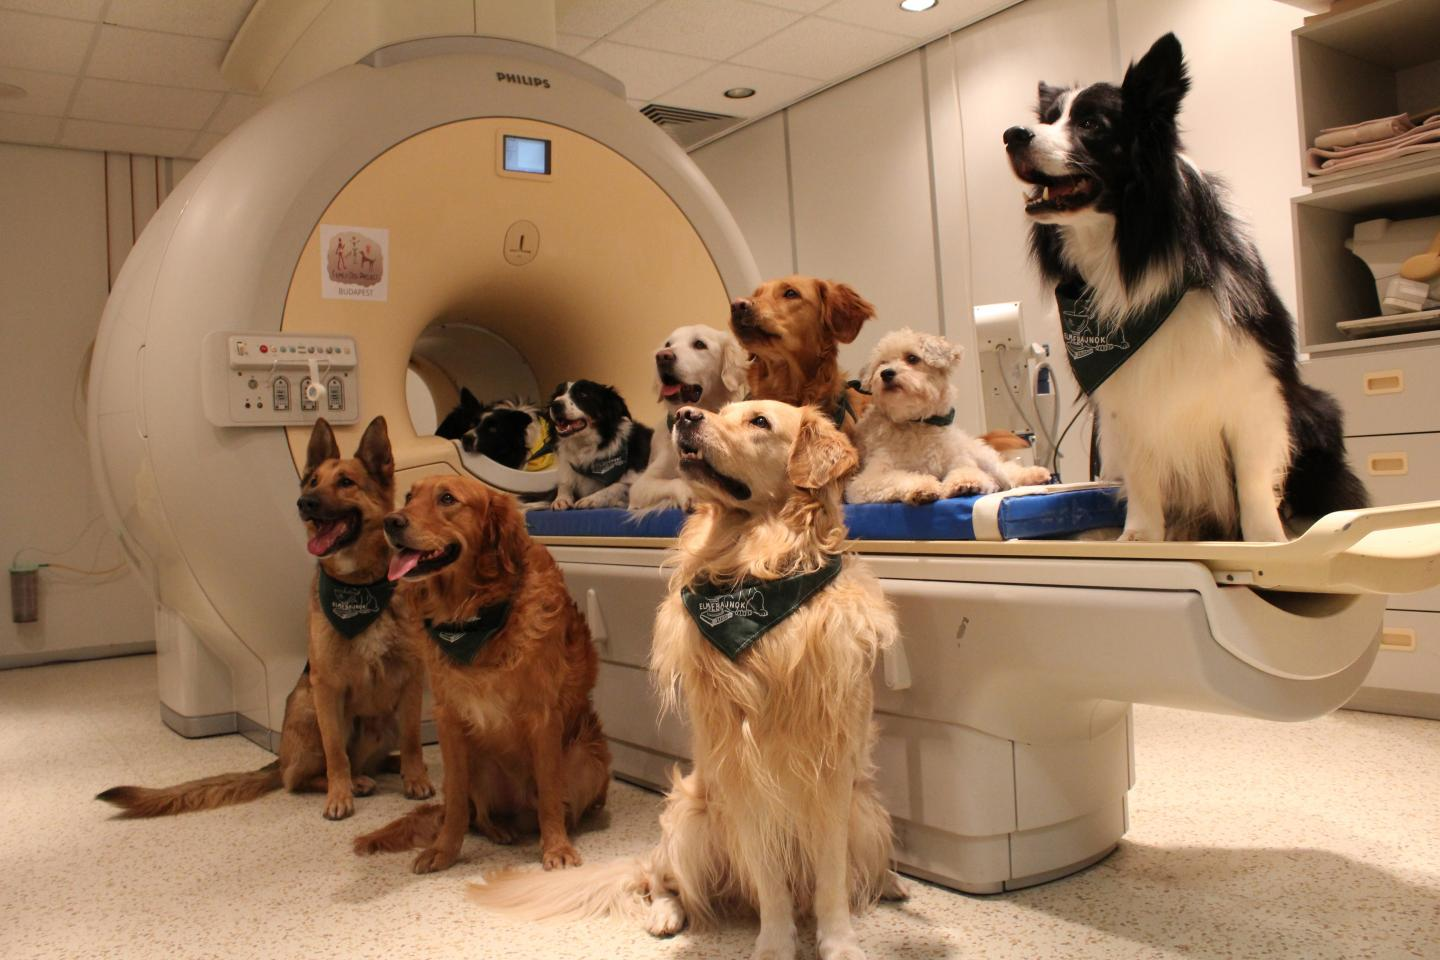 Dogs Understand Both Vocabulary and Intonation of Human Speech (1 of 3)